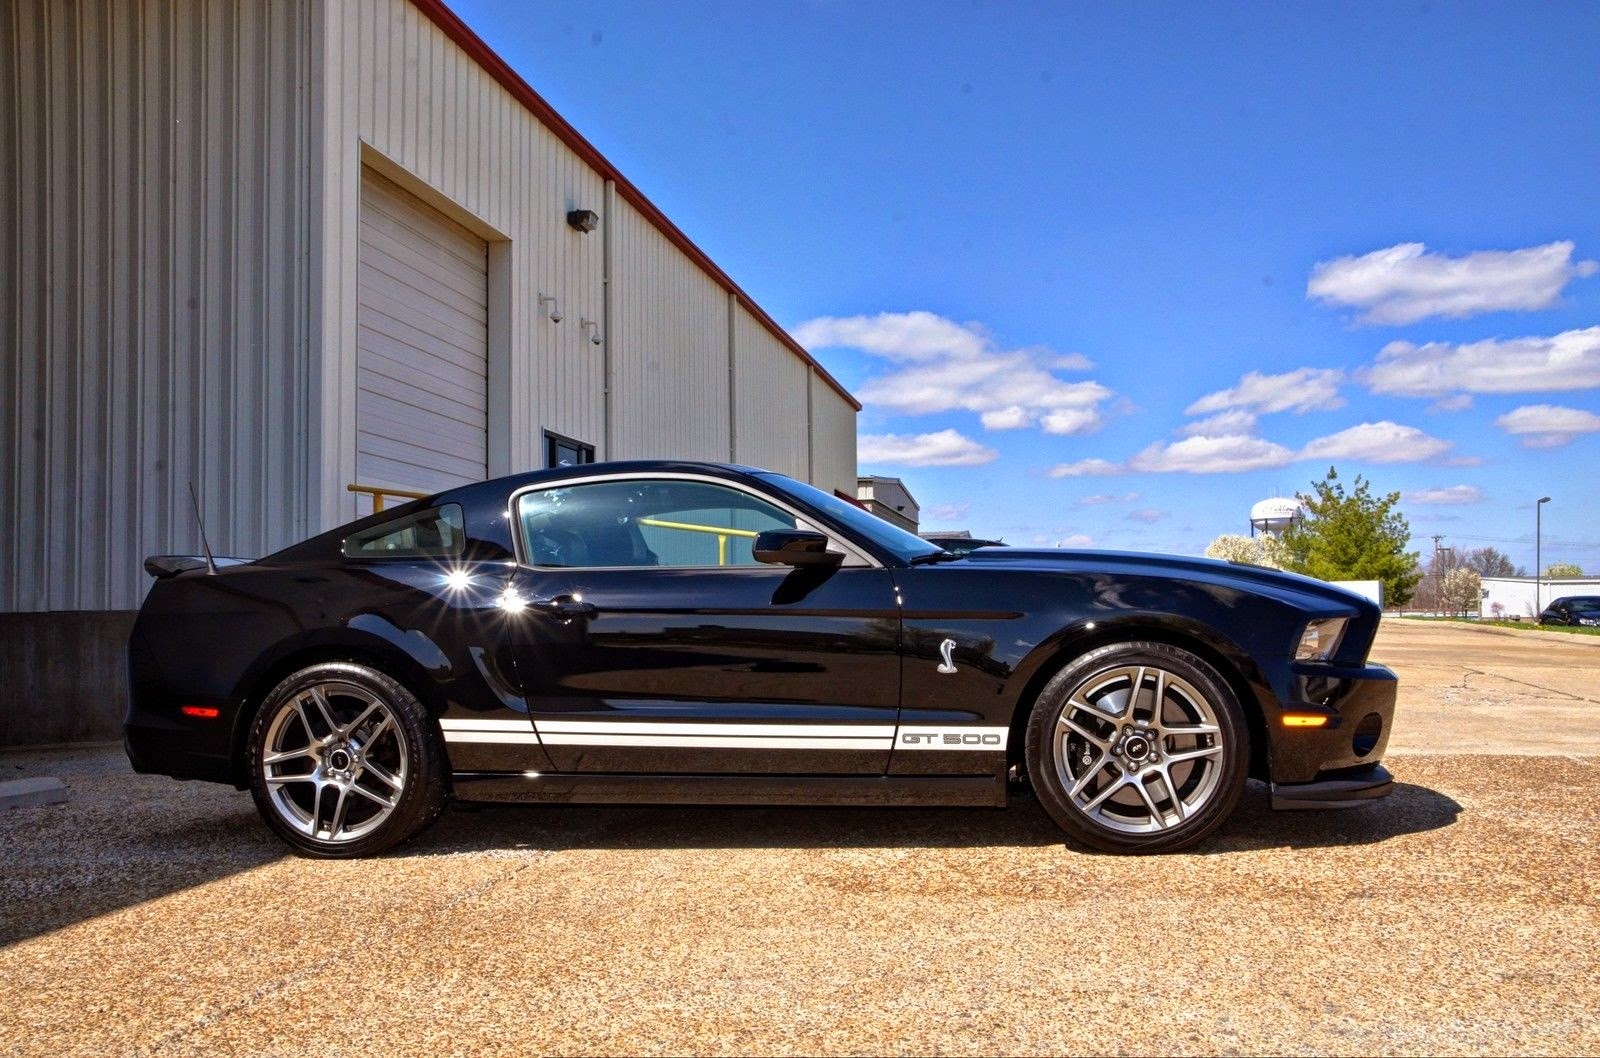 mustang shelby gt500 ford gt american 20x9 muscle performance spoke brembo fitment front cars door convertible forsale tapatalk